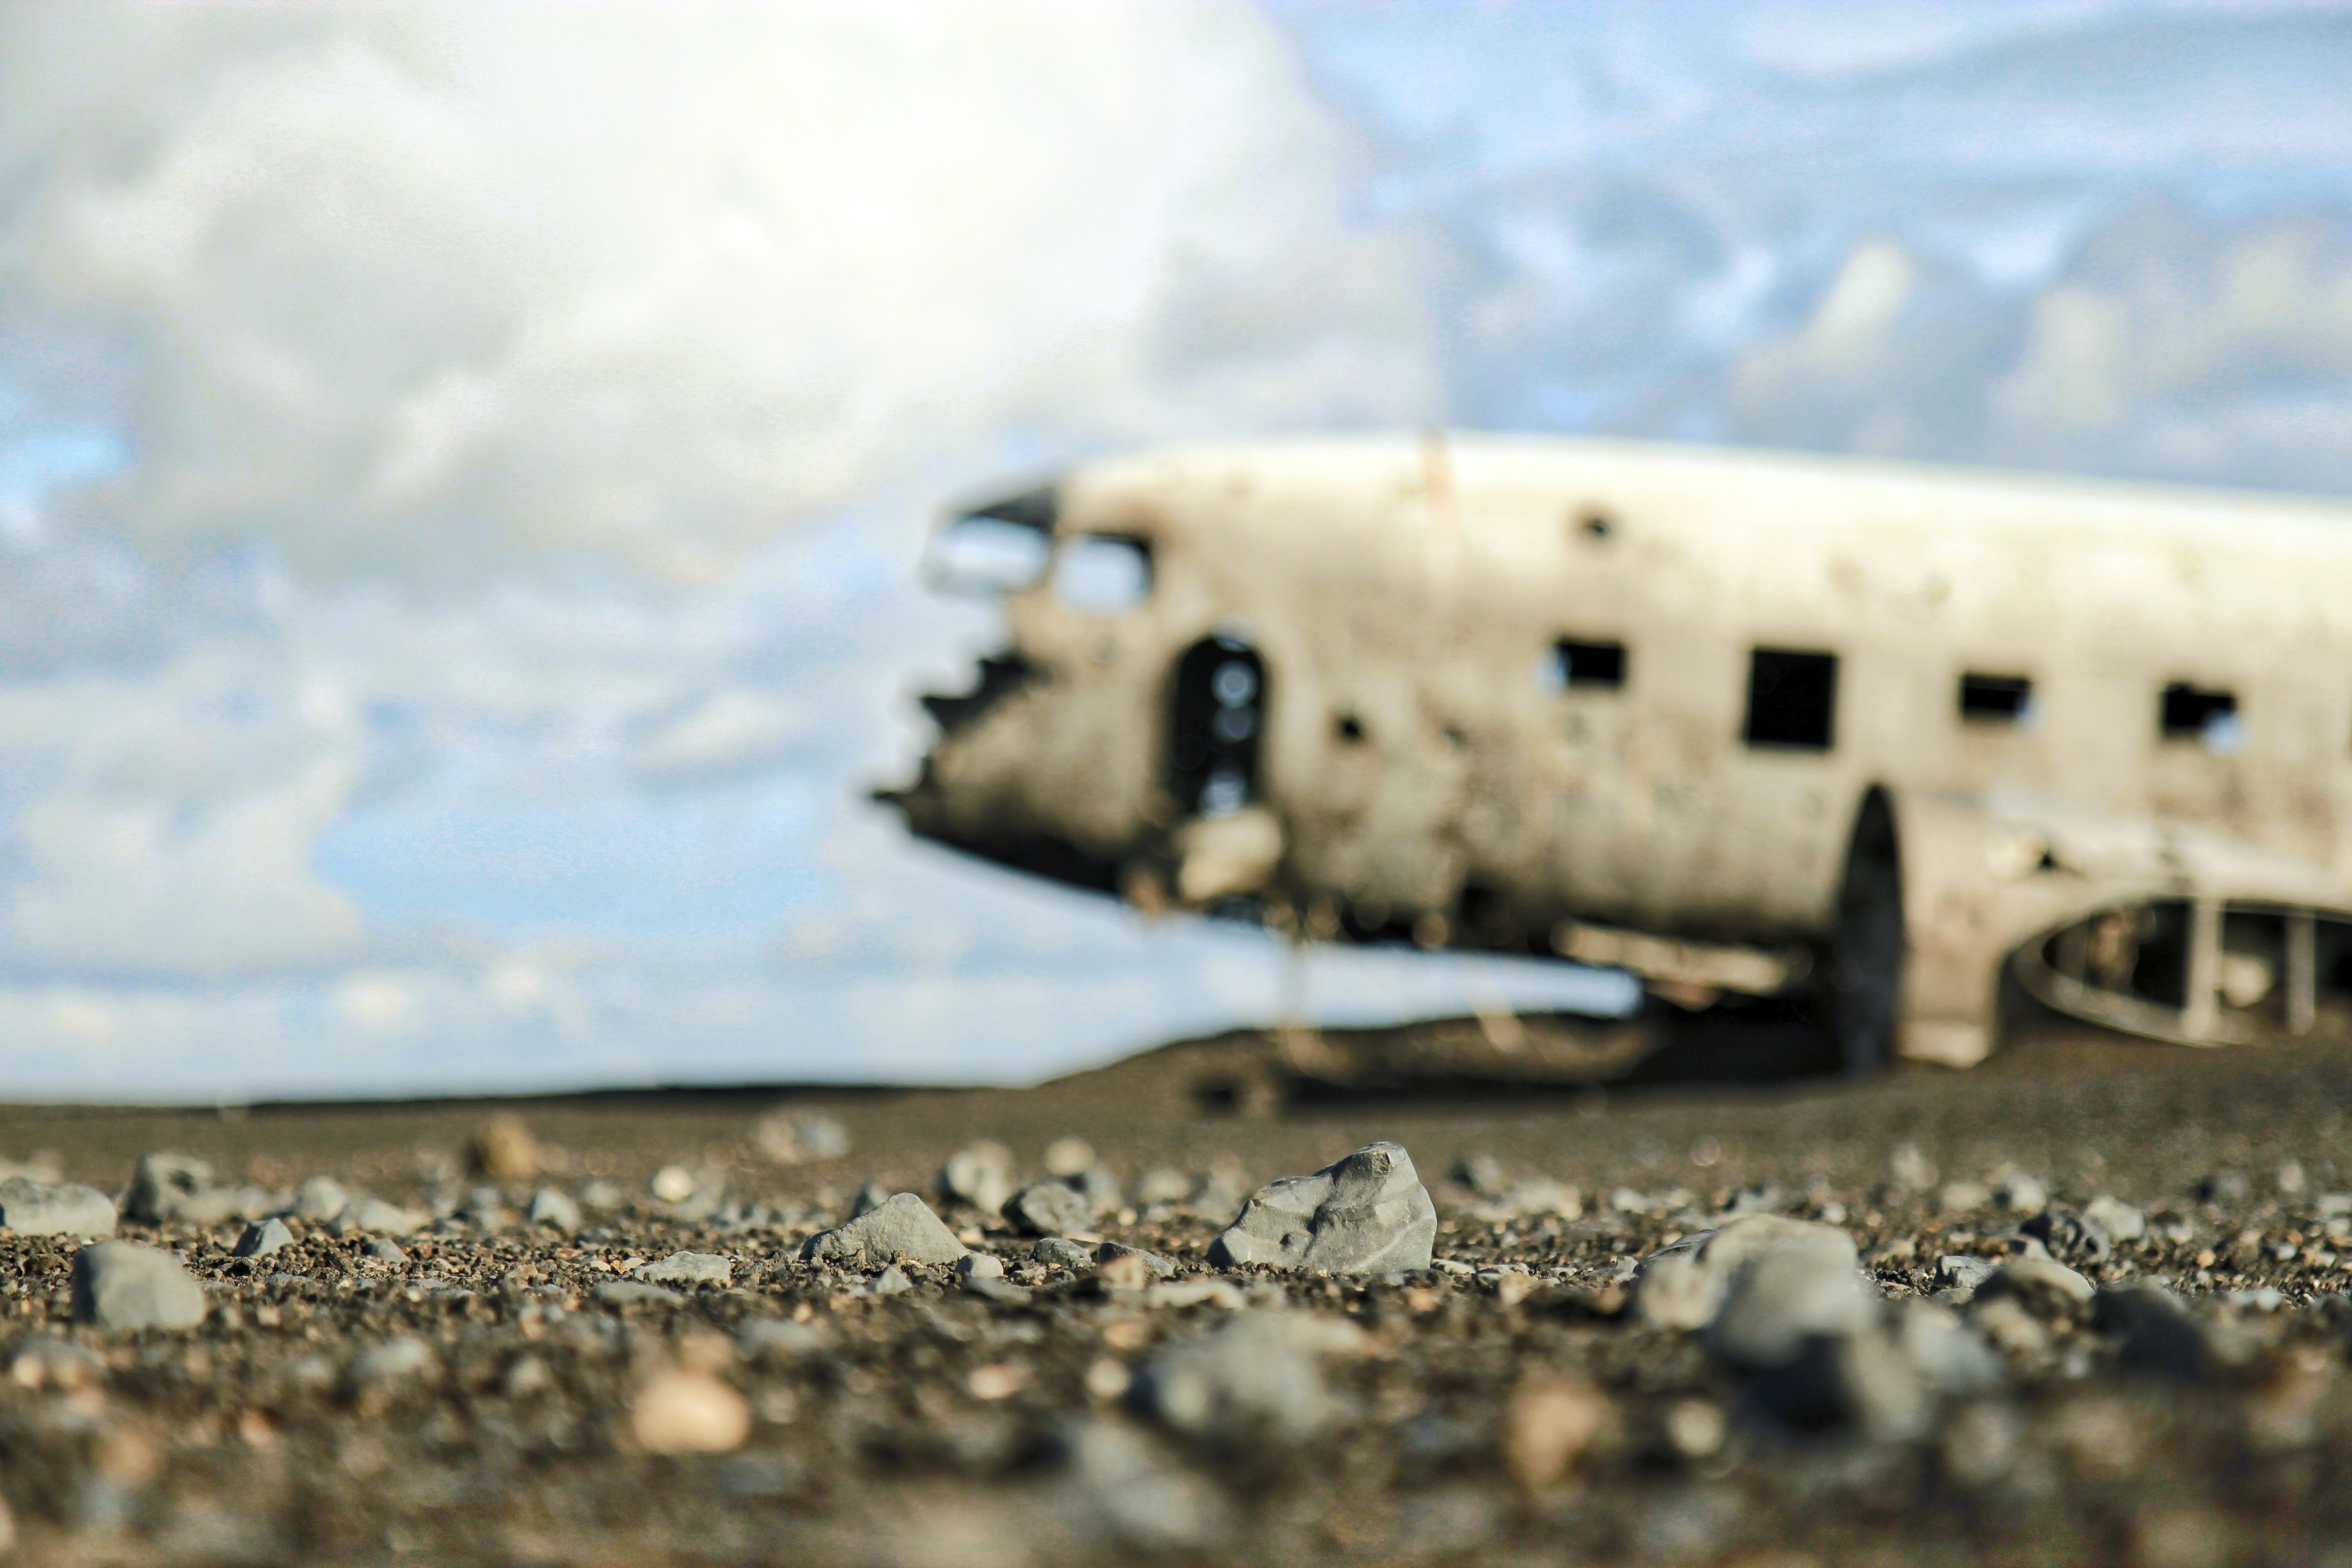 Macro view of pebbles with blurry plane wreckage and cloudy sky in the background